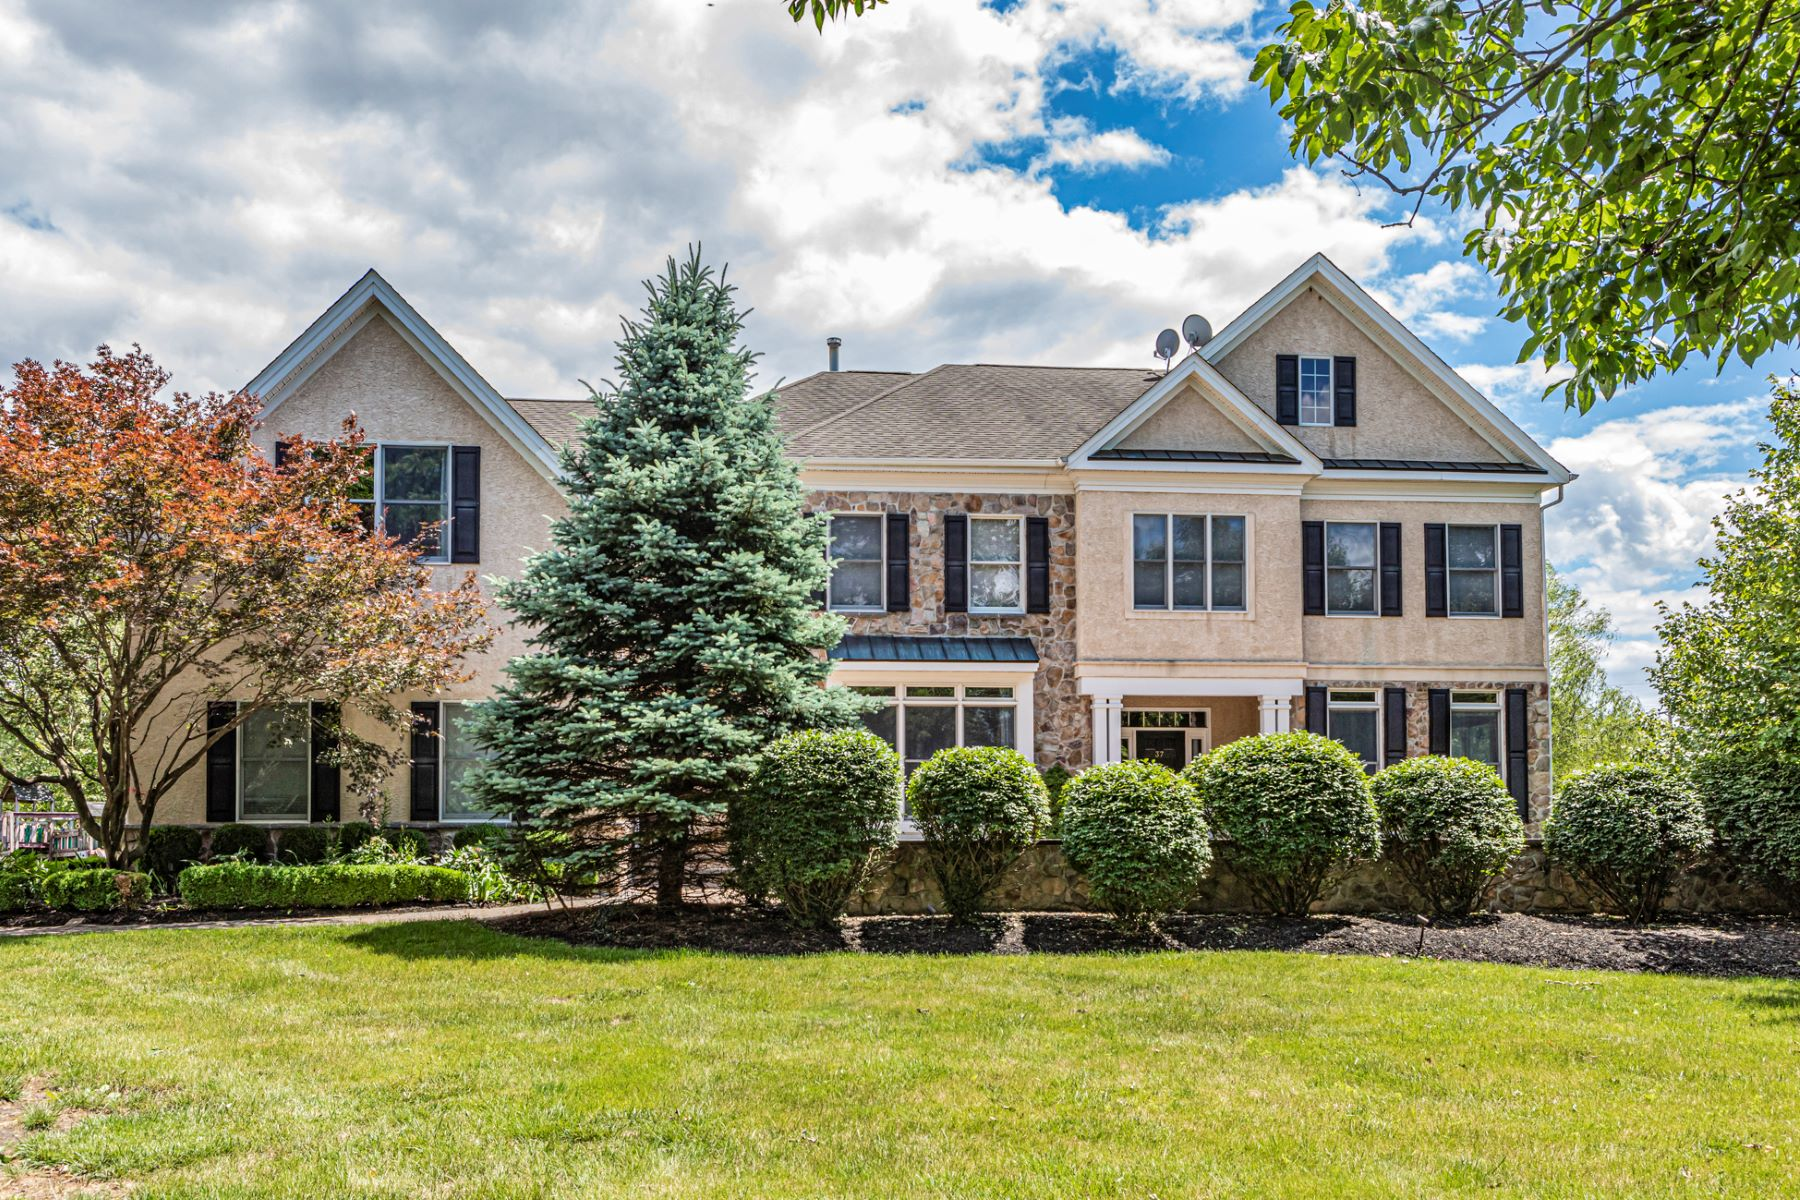 Single Family Homes للـ Sale في Gracious and Spacious In A Beloved Neighborhood 37 Van Zandt Road, Skillman, New Jersey 08558 United Statesفي/حول: Montgomery Township